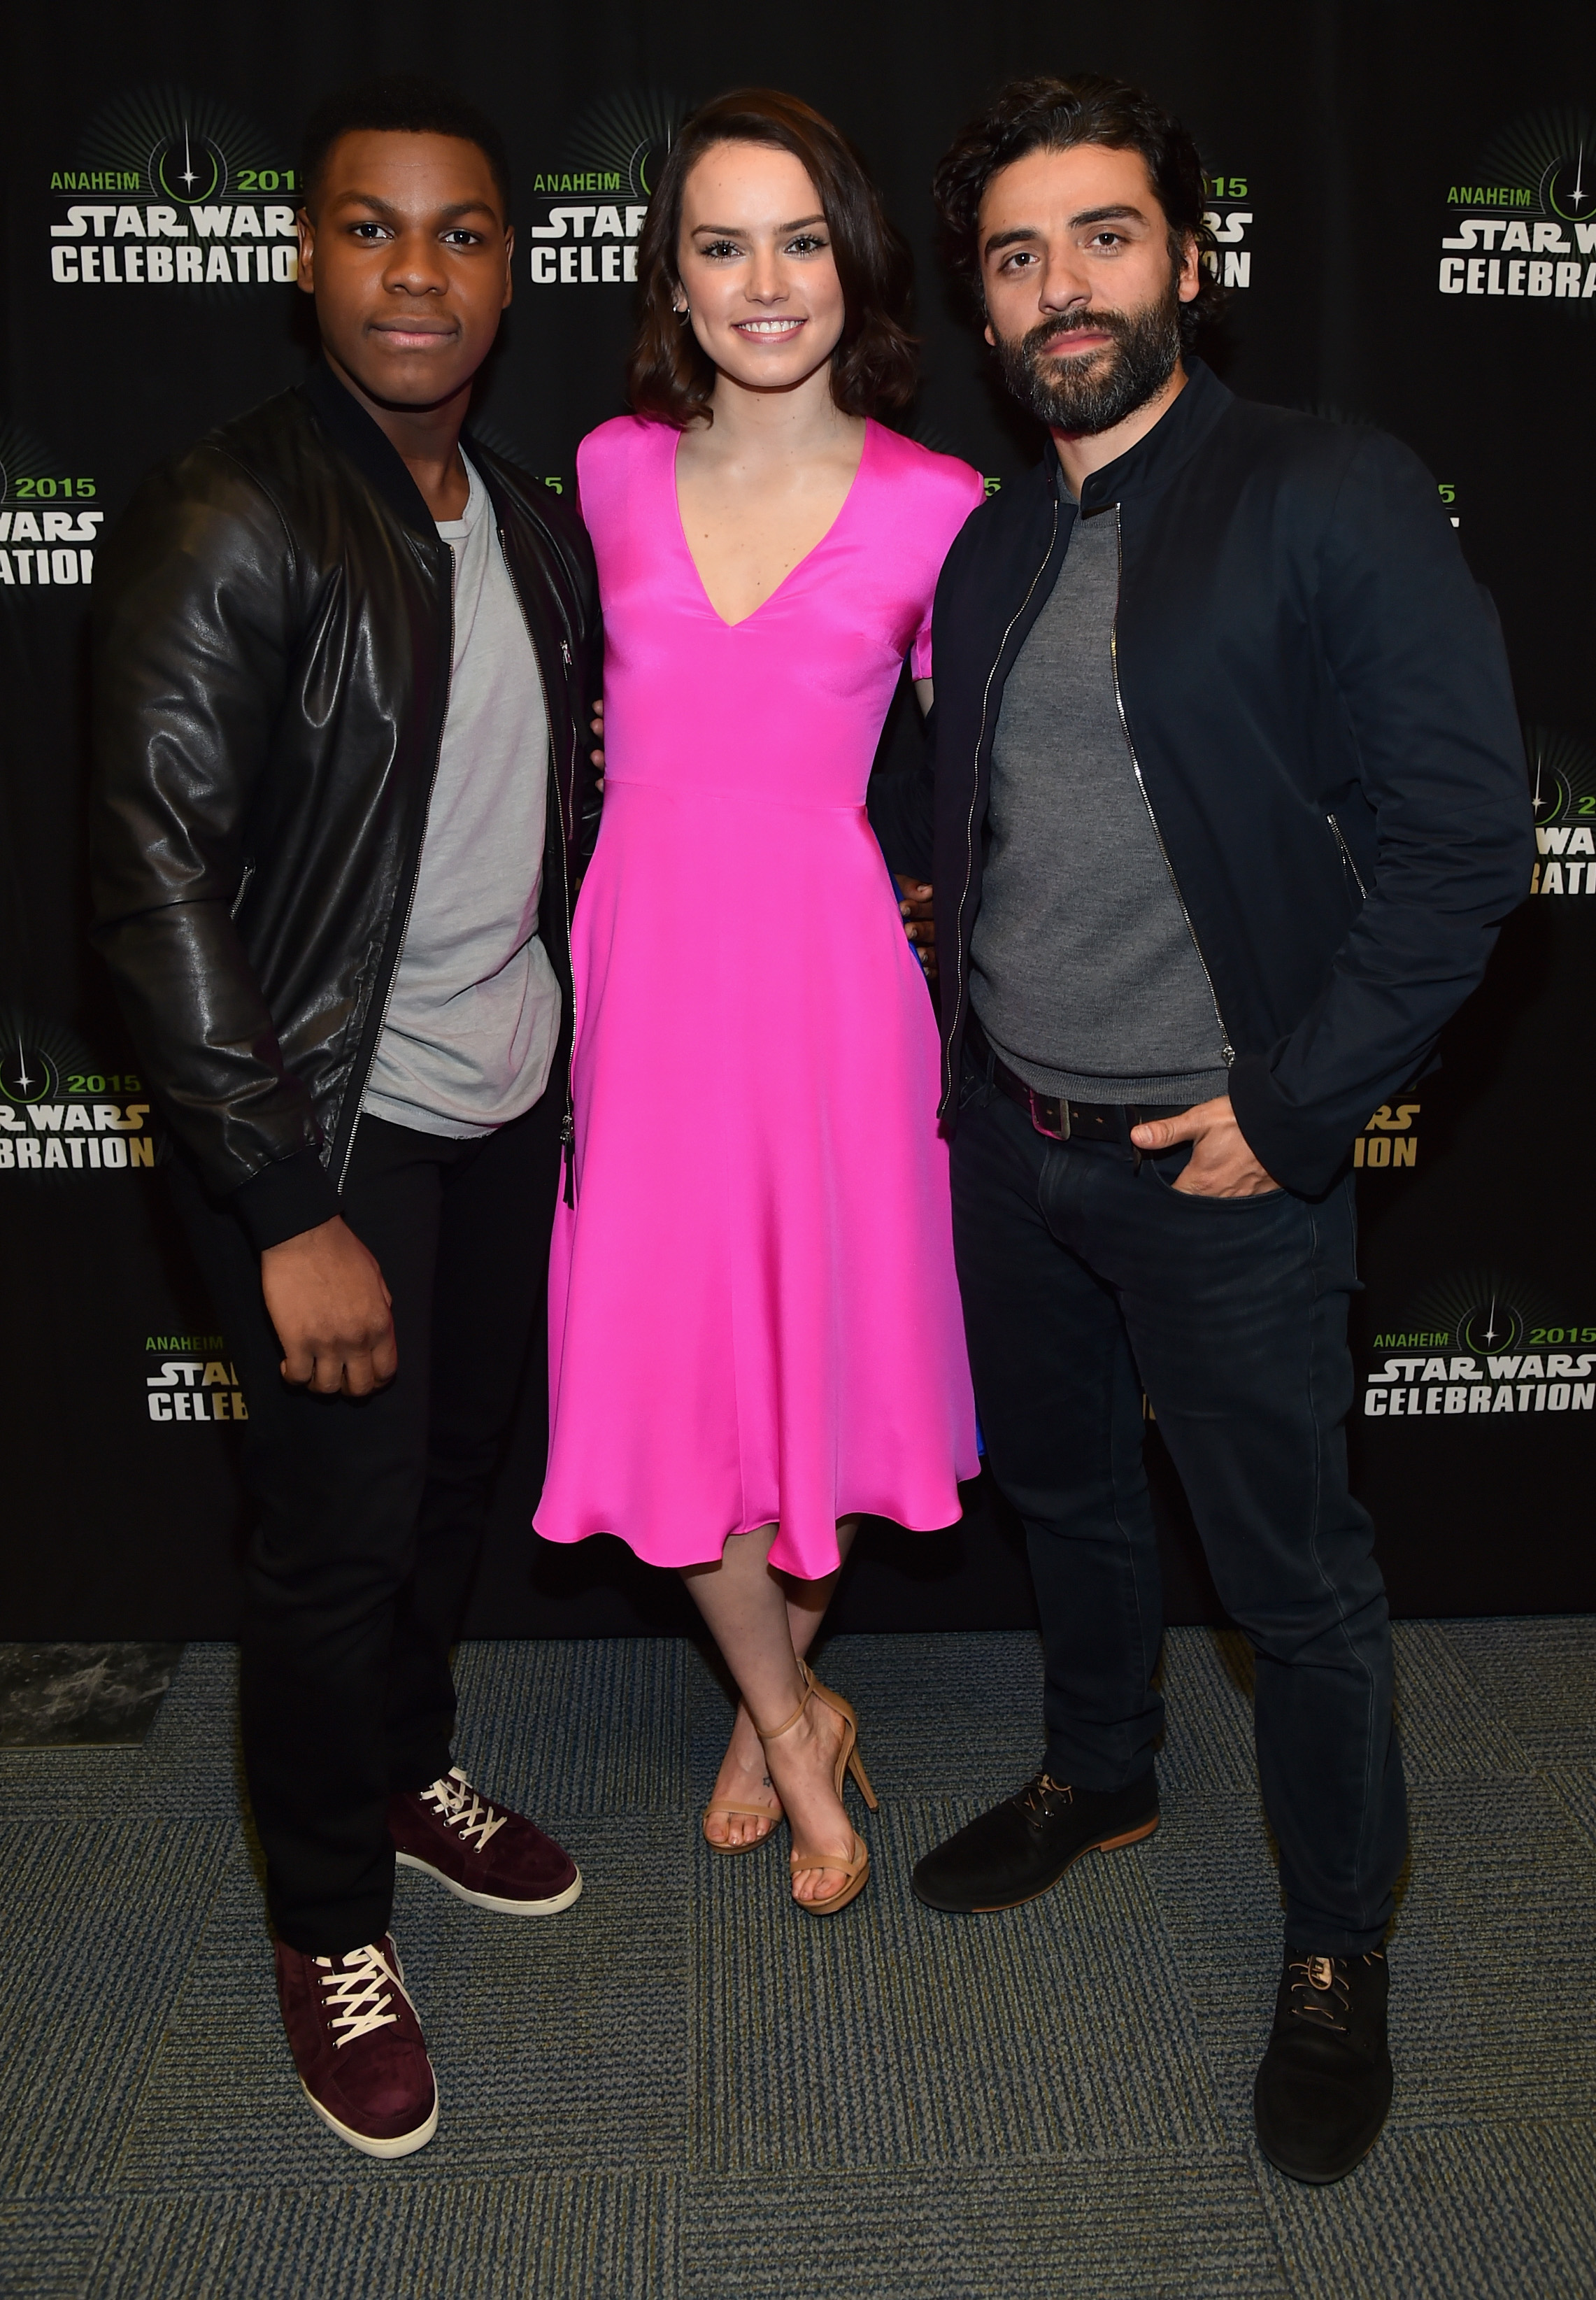 Oscar Isaac, uri ng bulaklak Ridley and John Boyega at The bituin Wars Celebration